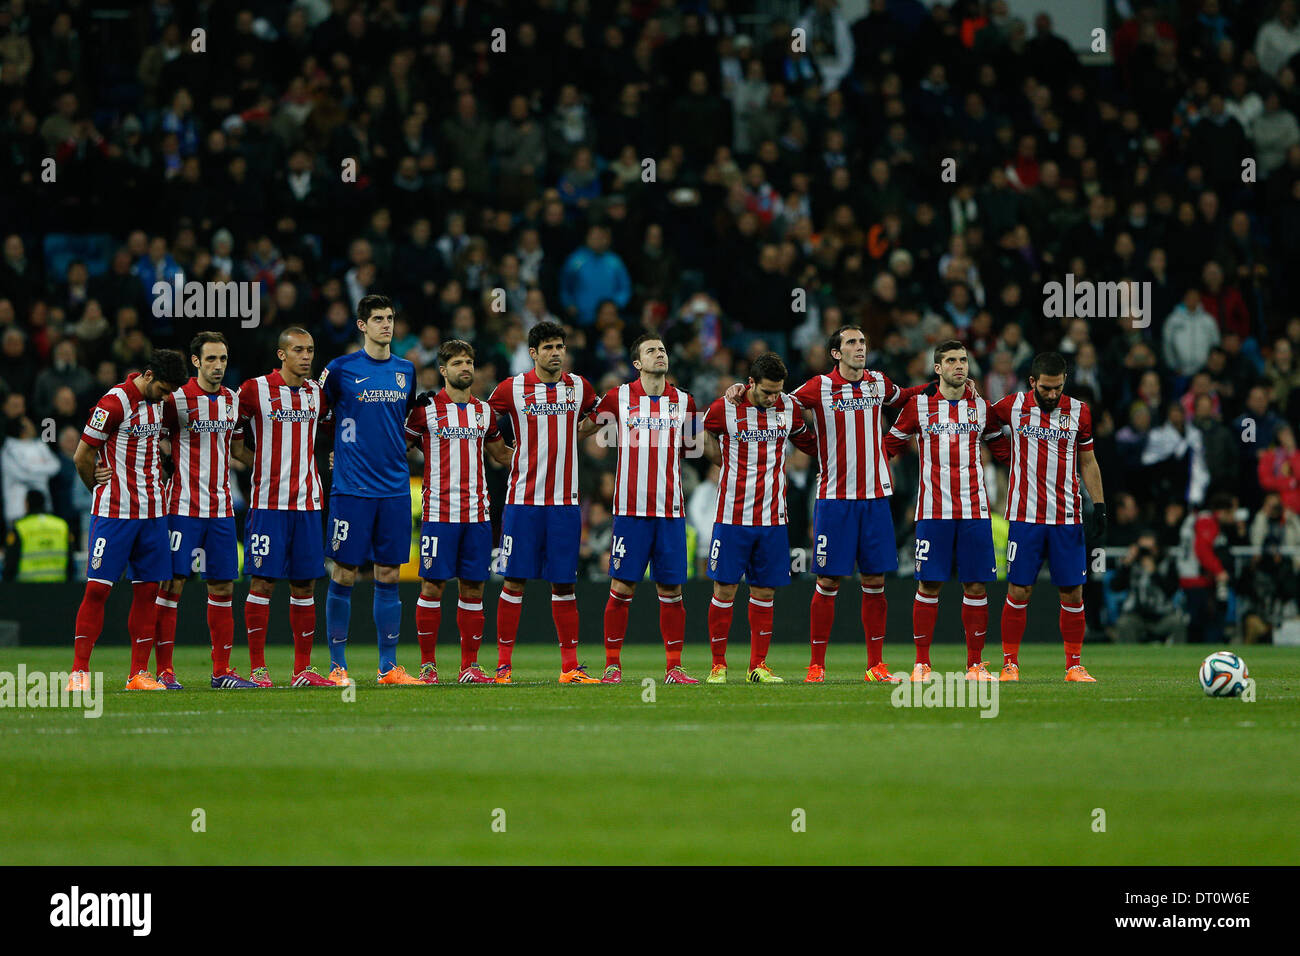 Madrid, Spain. 05th Feb, 2014. Copa del Rey first leg match Real Madrid CF versus Atletico de Madrid match at the Santiago Bernabeu Stadium. The picture show Credit:  Action Plus Sports/Alamy Live News - Stock Image